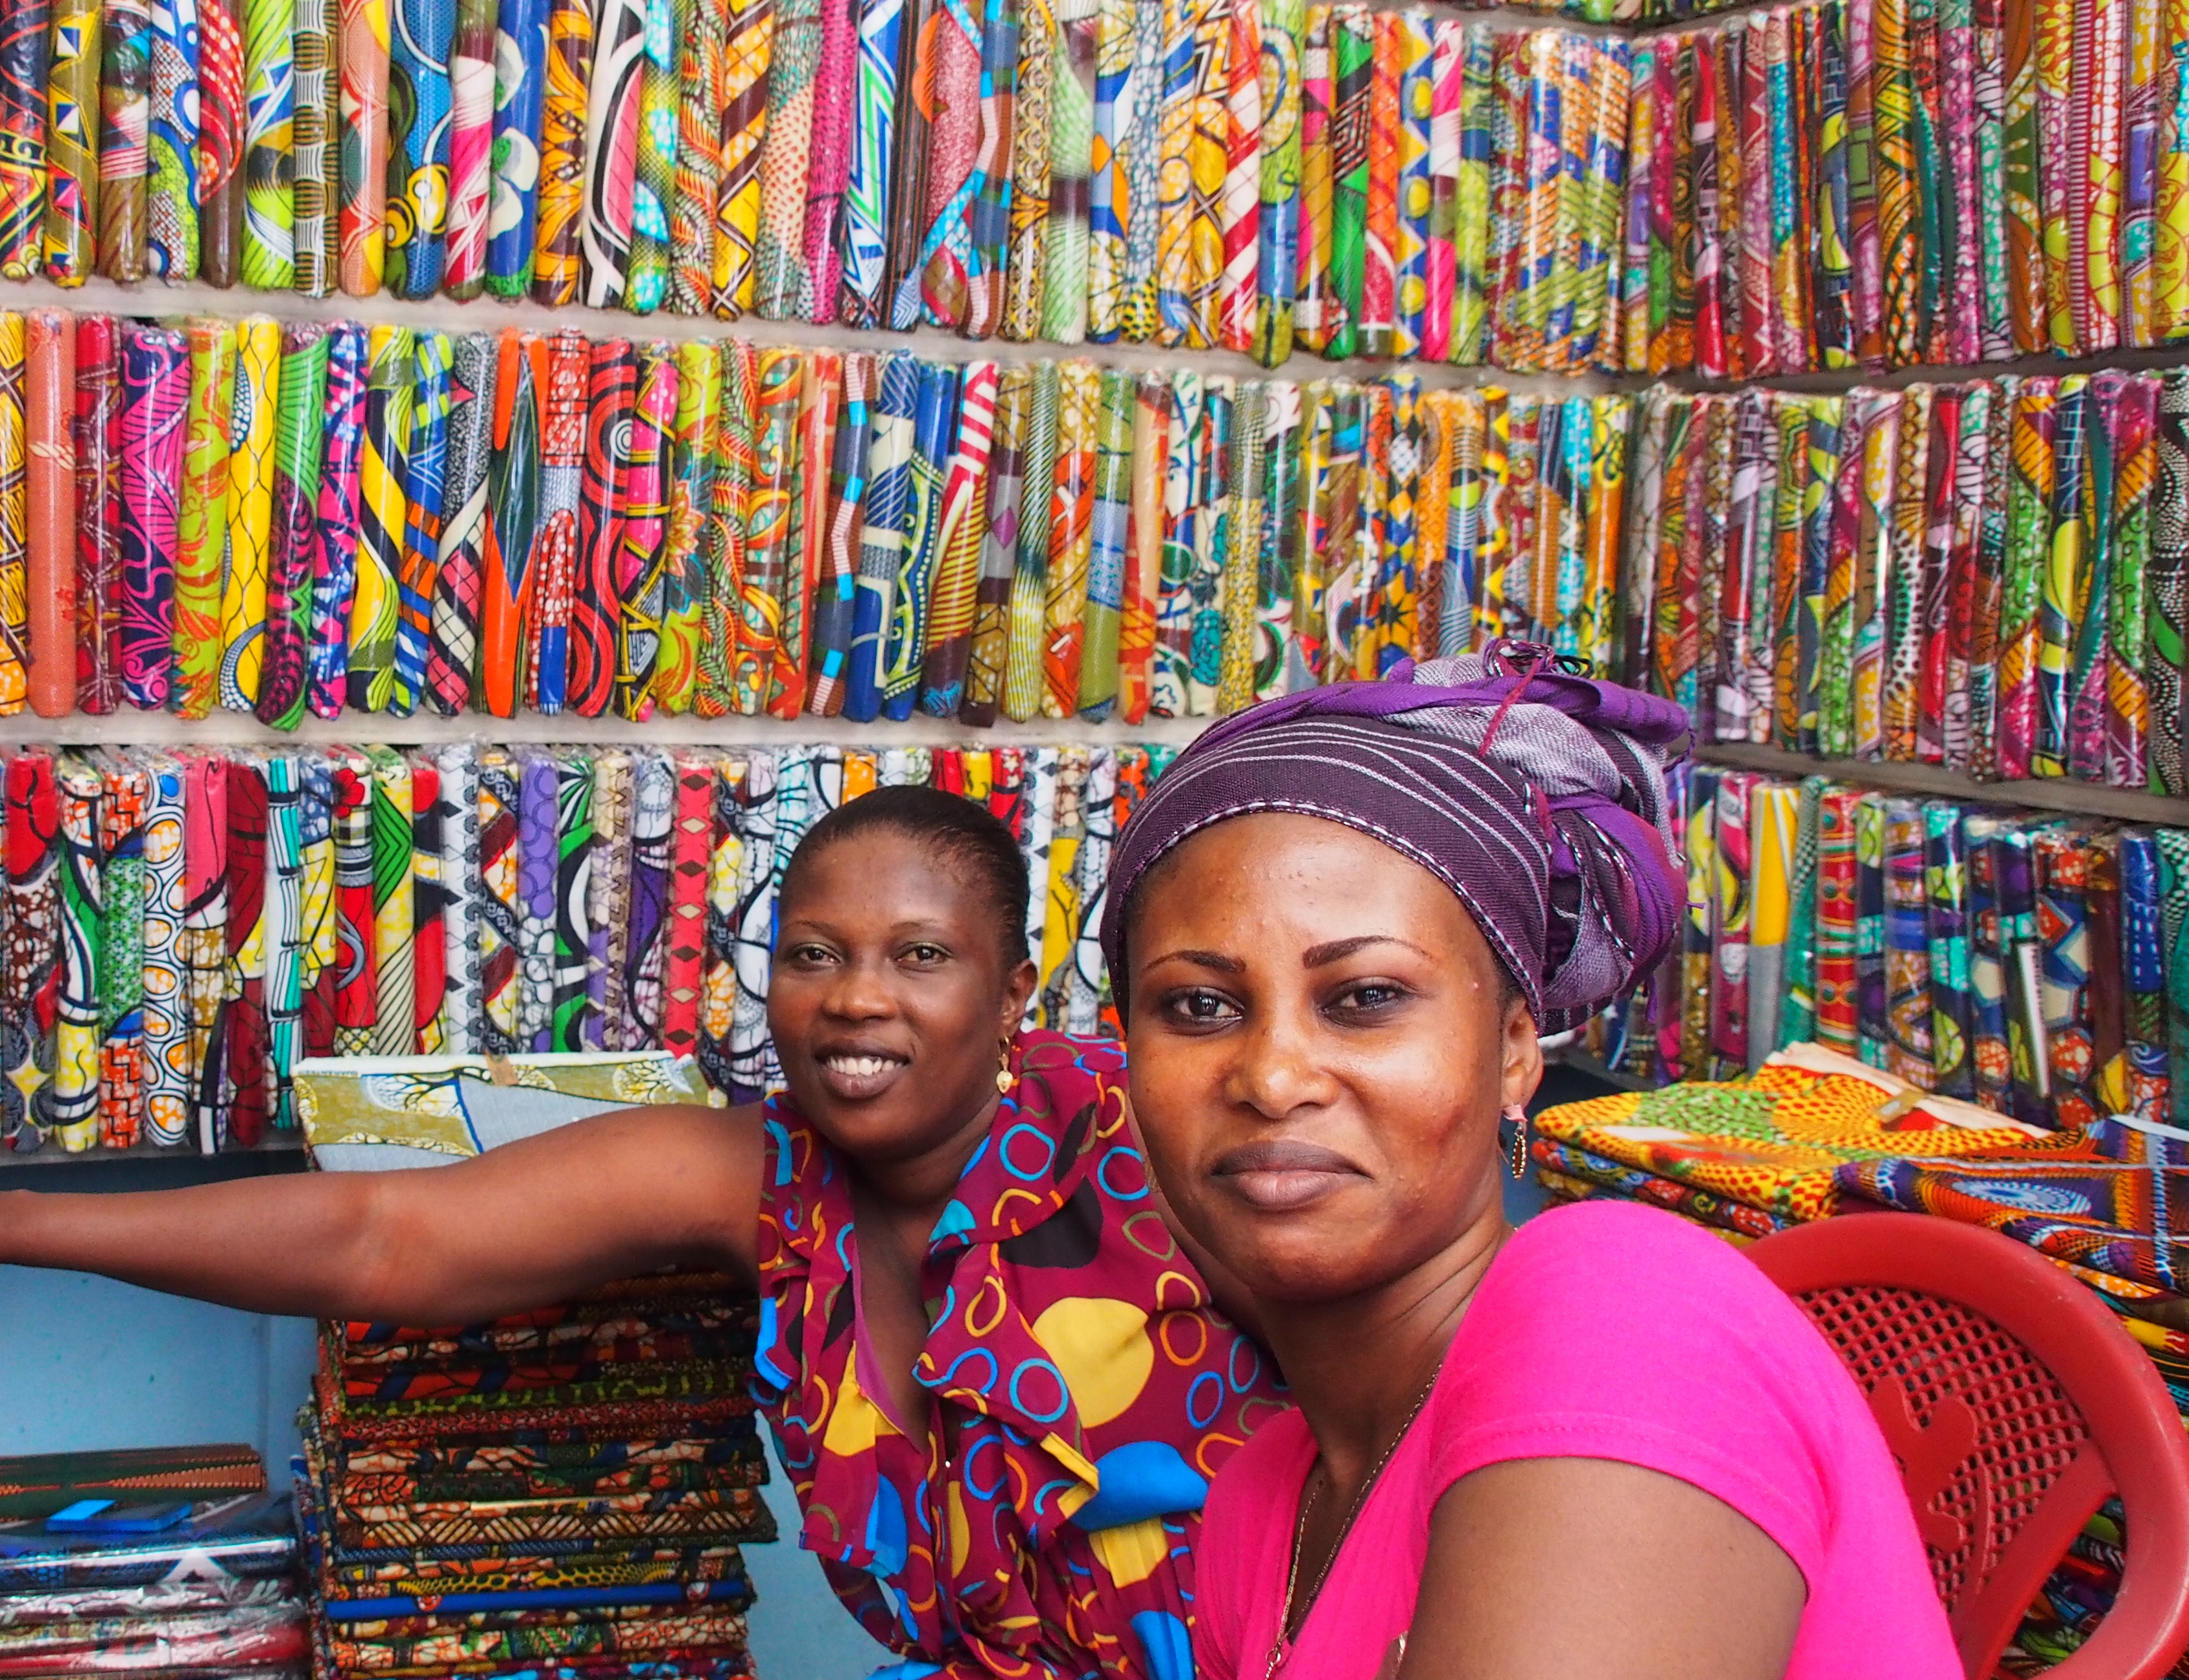 The biggest market in West Africa! | six degrees north